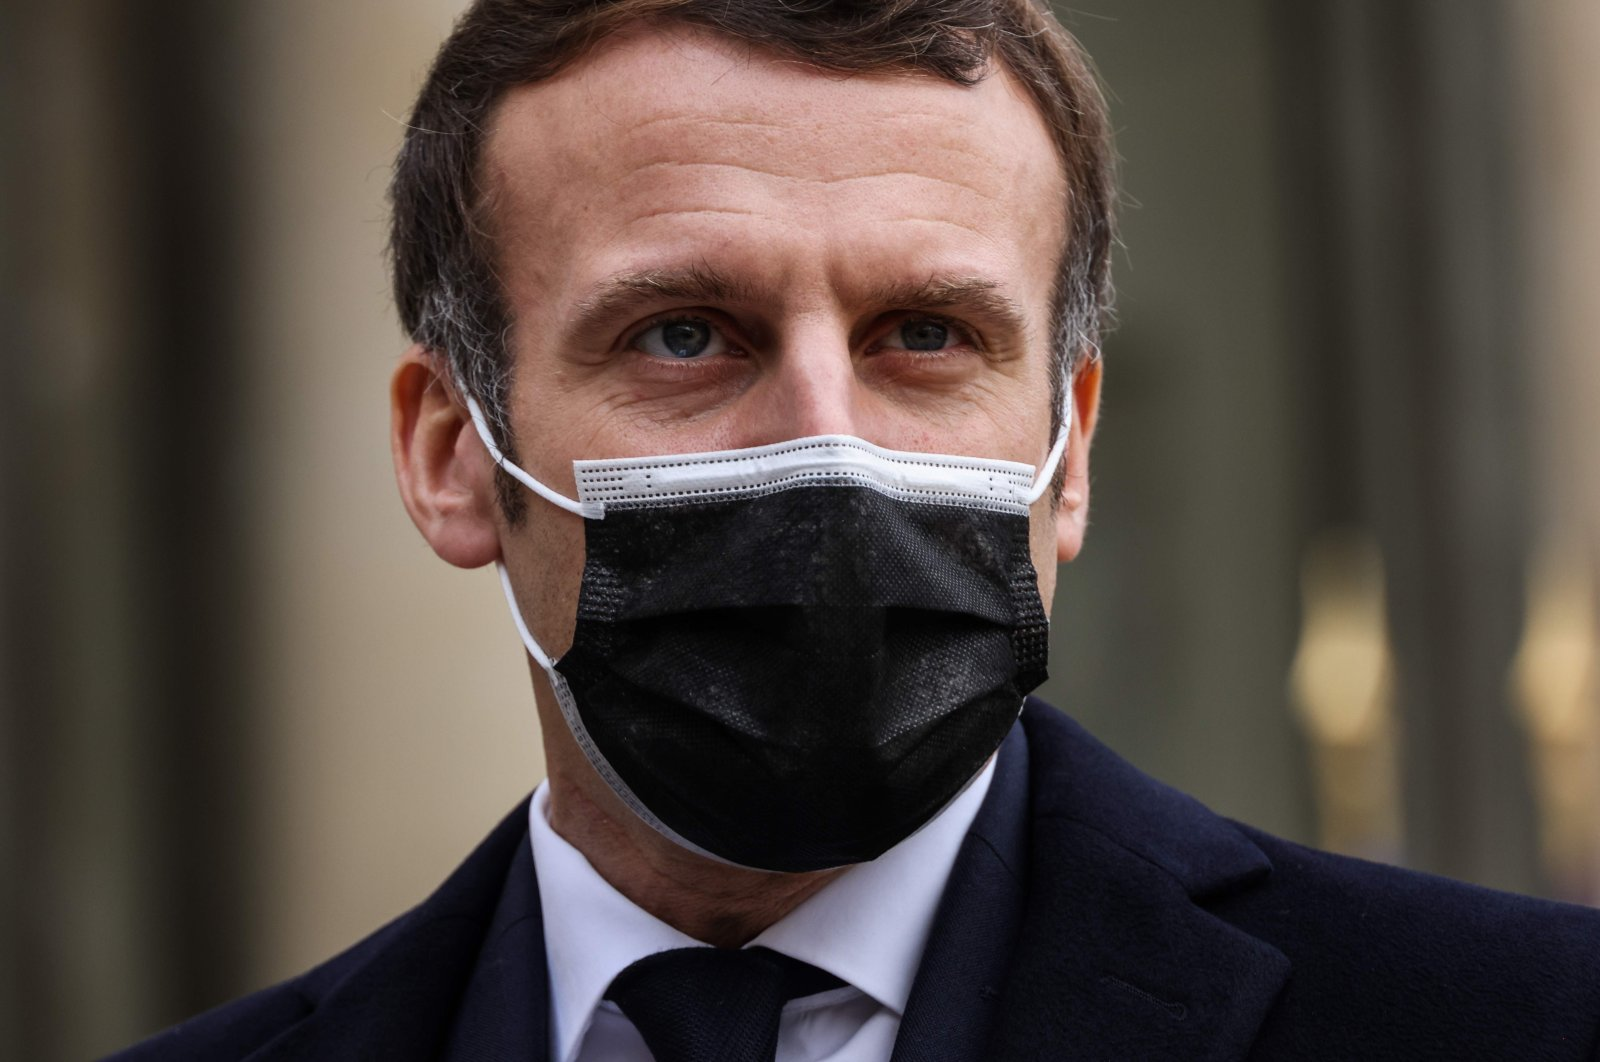 French President Emmanuel Macron addresses reporters upon the arrival of the Portuguese prime minister for a working lunch at the Elysee Palace in Paris, France, Dec. 16, 2020. (AFP Photo)